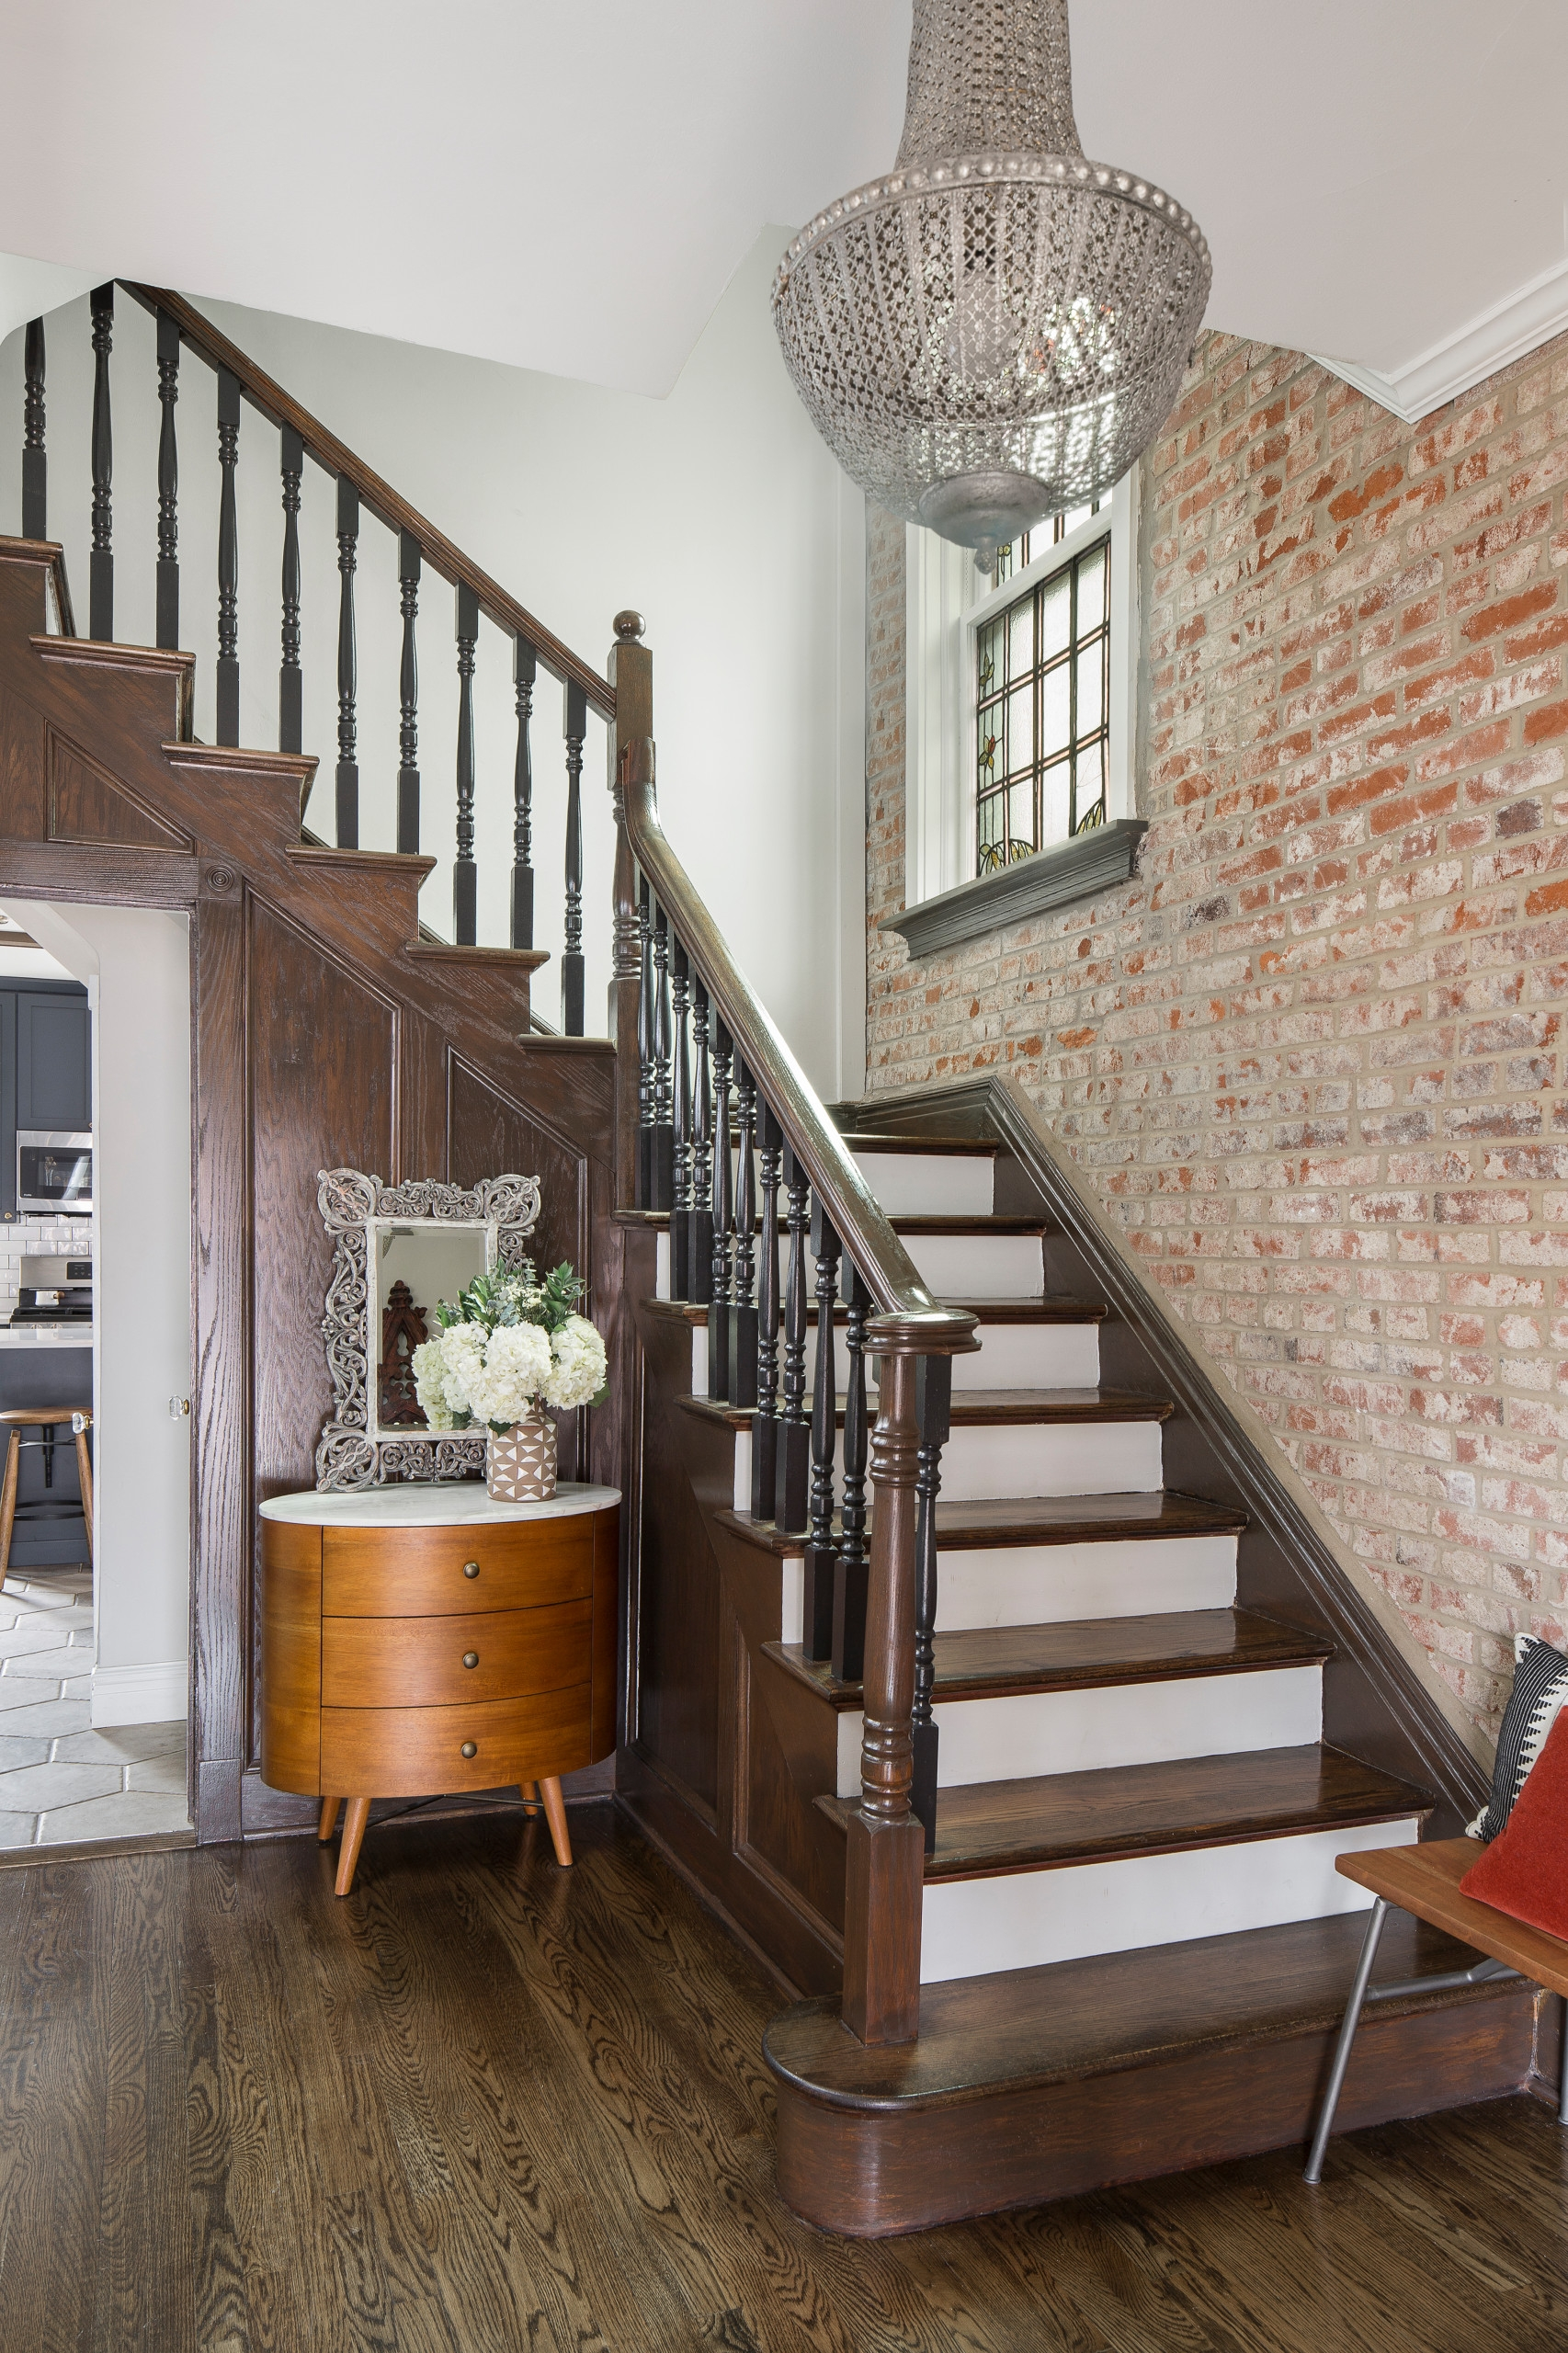 75 Beautiful Staircase Pictures Ideas September 2020 Houzz | Teak Wood Staircase Railings | Wood Frame | Hand | Sitout | Wood Carving | Lakdi